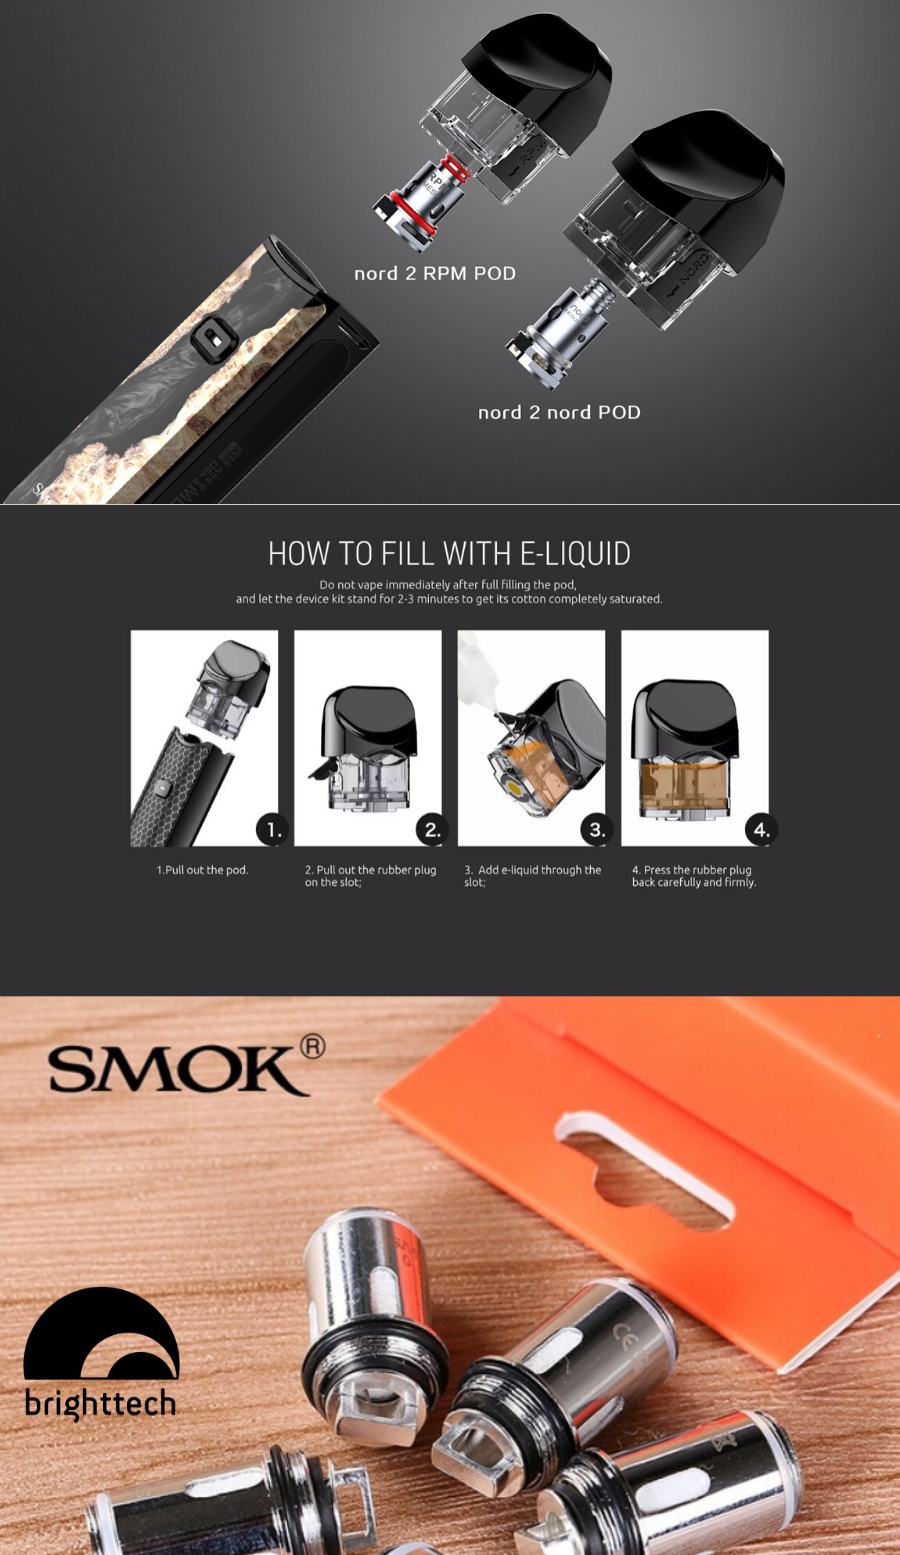 SMOK Nord 2 Nord or RPM Pod -Pack of 3 pieces description